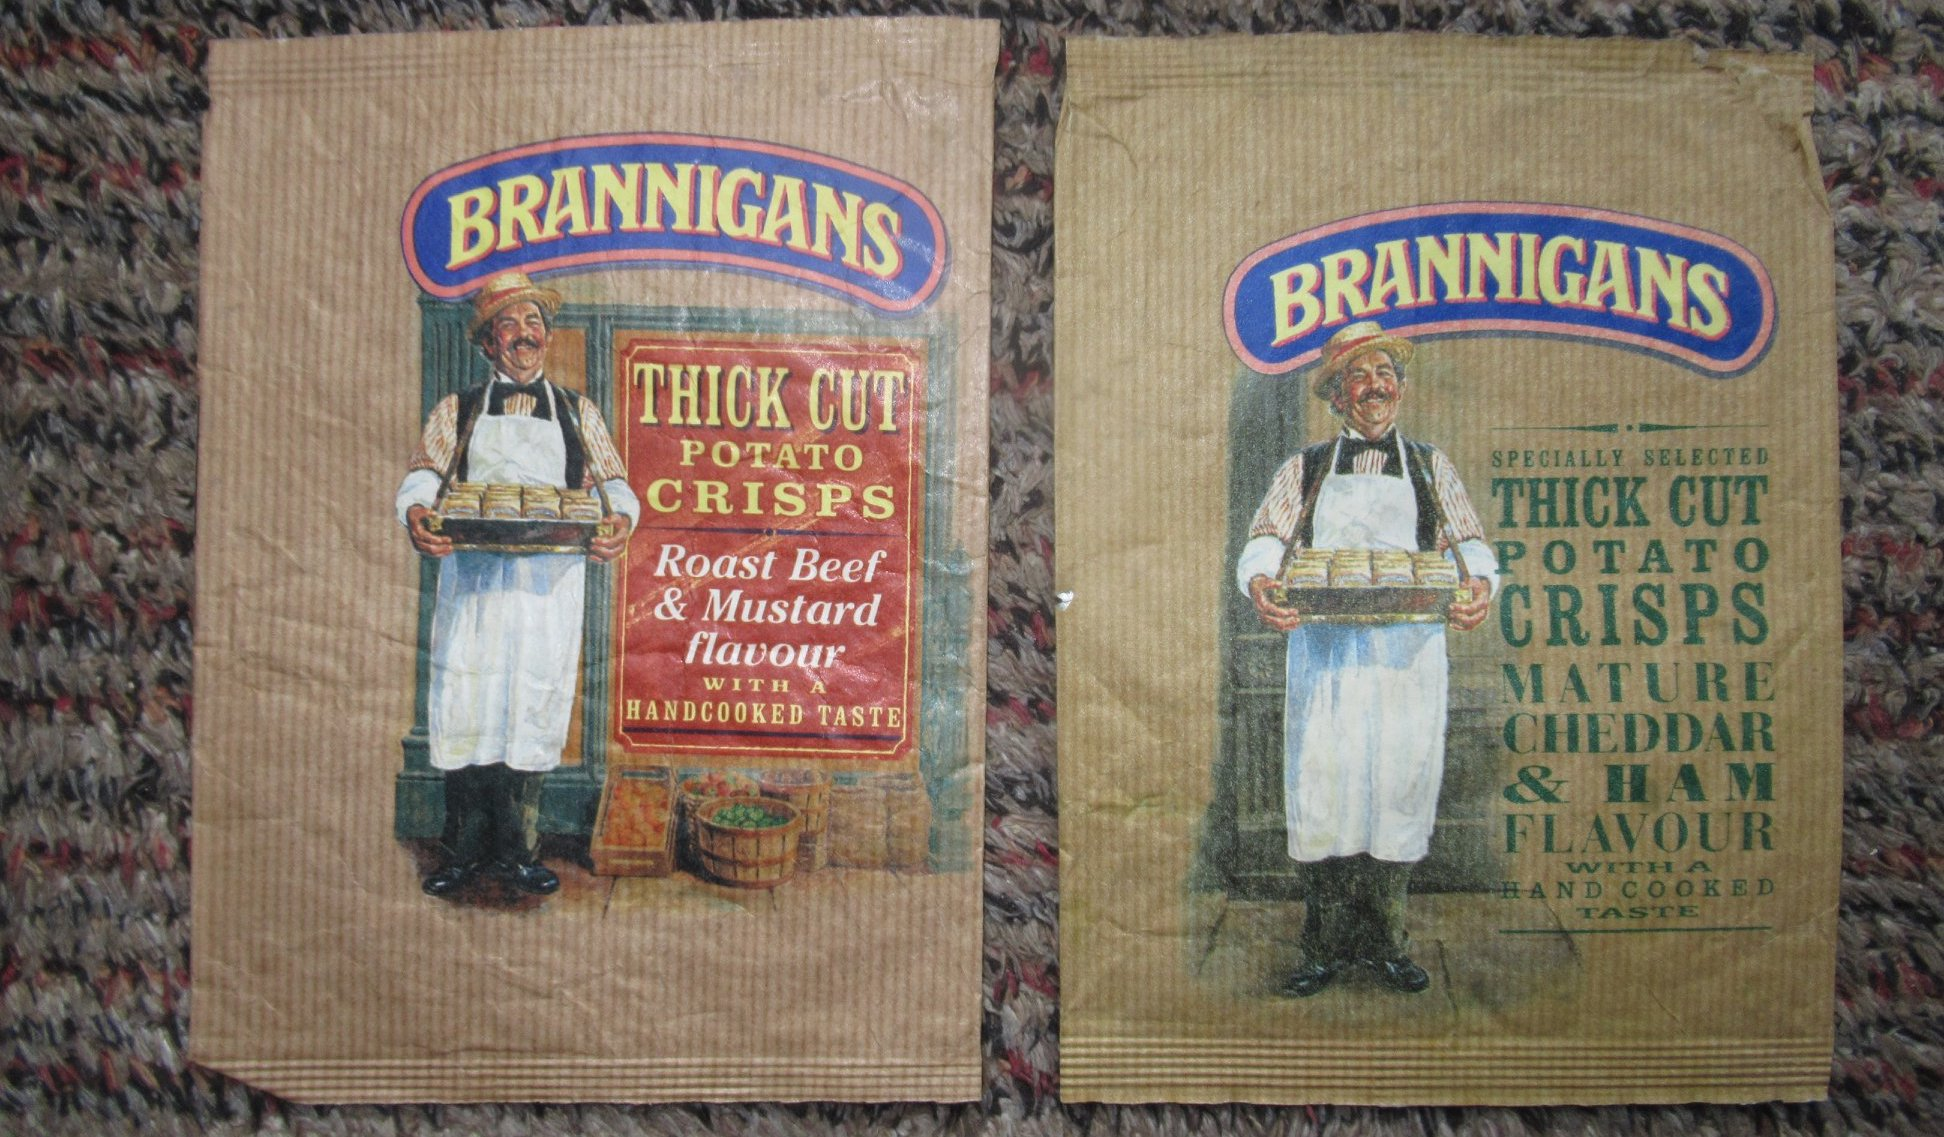 Two Brannigans crisp packets from the 1980s, depicting a jolly figure with the flavours roast beef and mustard and mature cheddar and ham